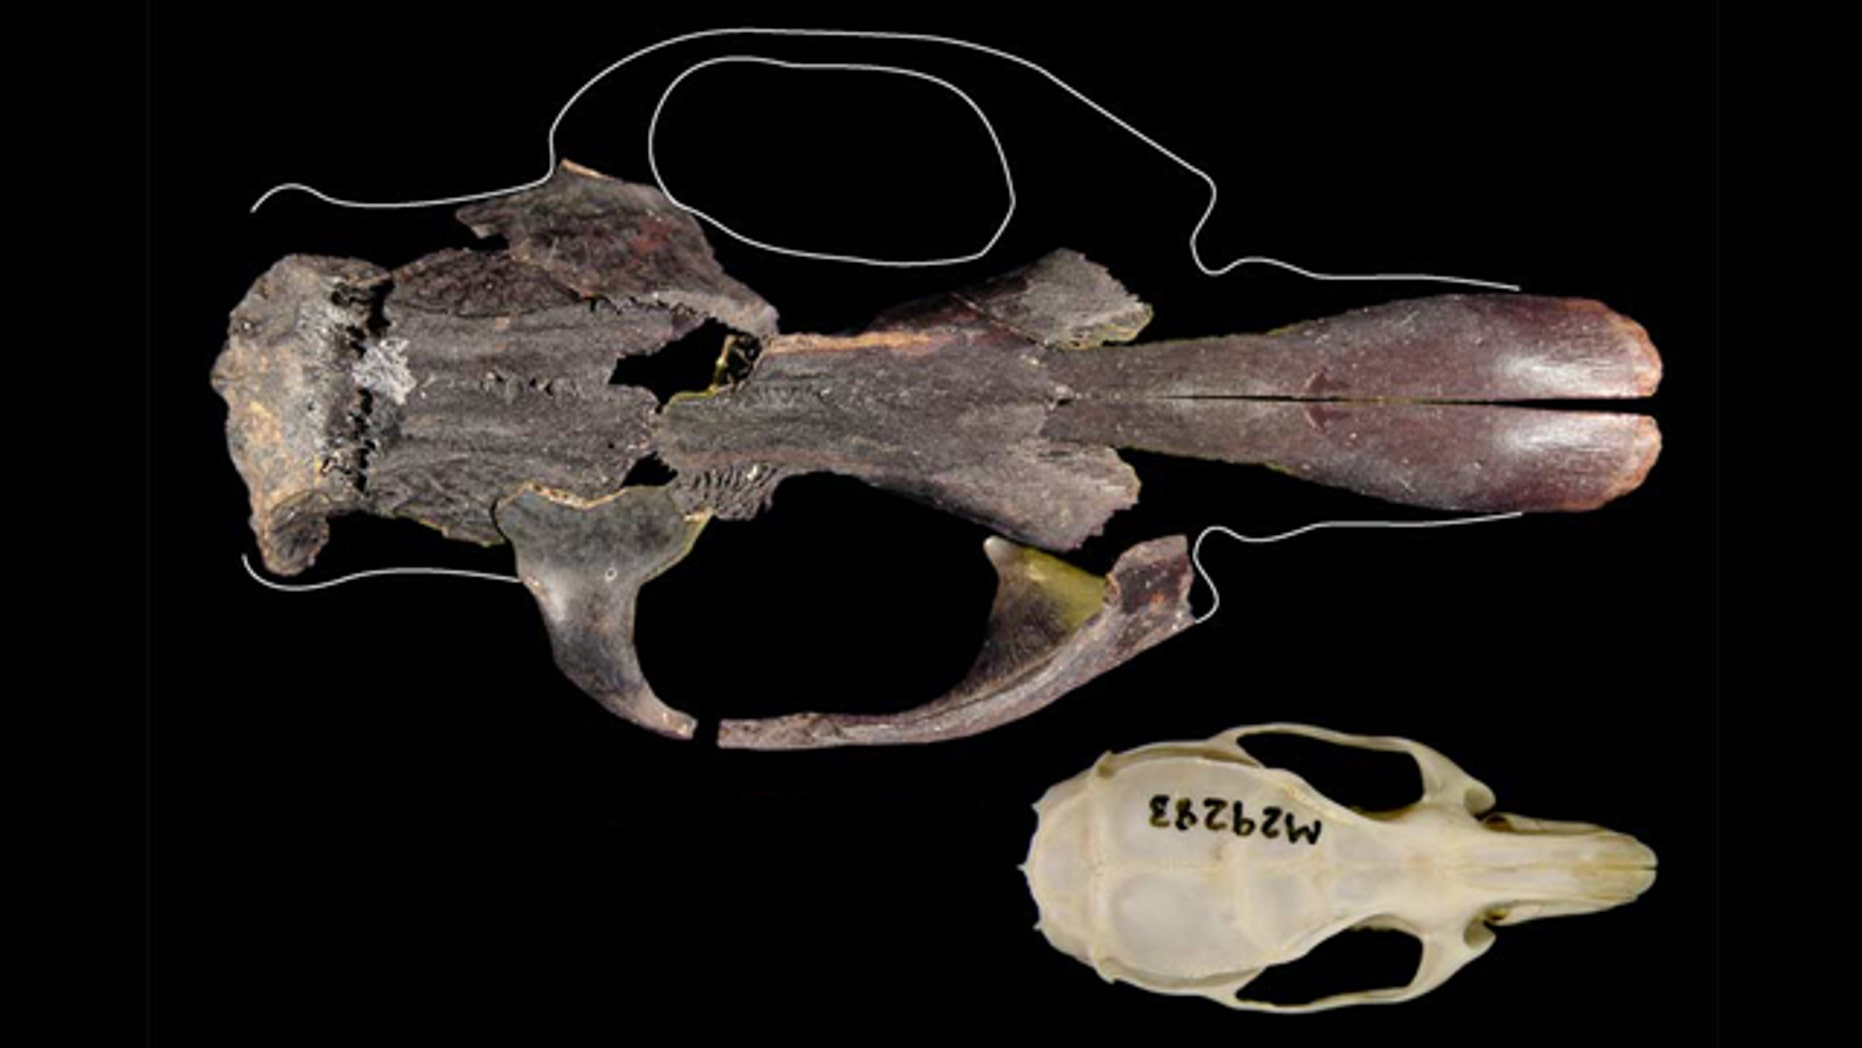 The world's largest rat, found on East Timor, would have dwarfed today's black rat (also called a house rat). Here, the skull of a black rat (bottom) compared with a fairly complete skull of one of Timor's other extinct giant rats (top). The giant rat shown here isn't the biggest of the extinct rats, which was around 25 percent bigger again.